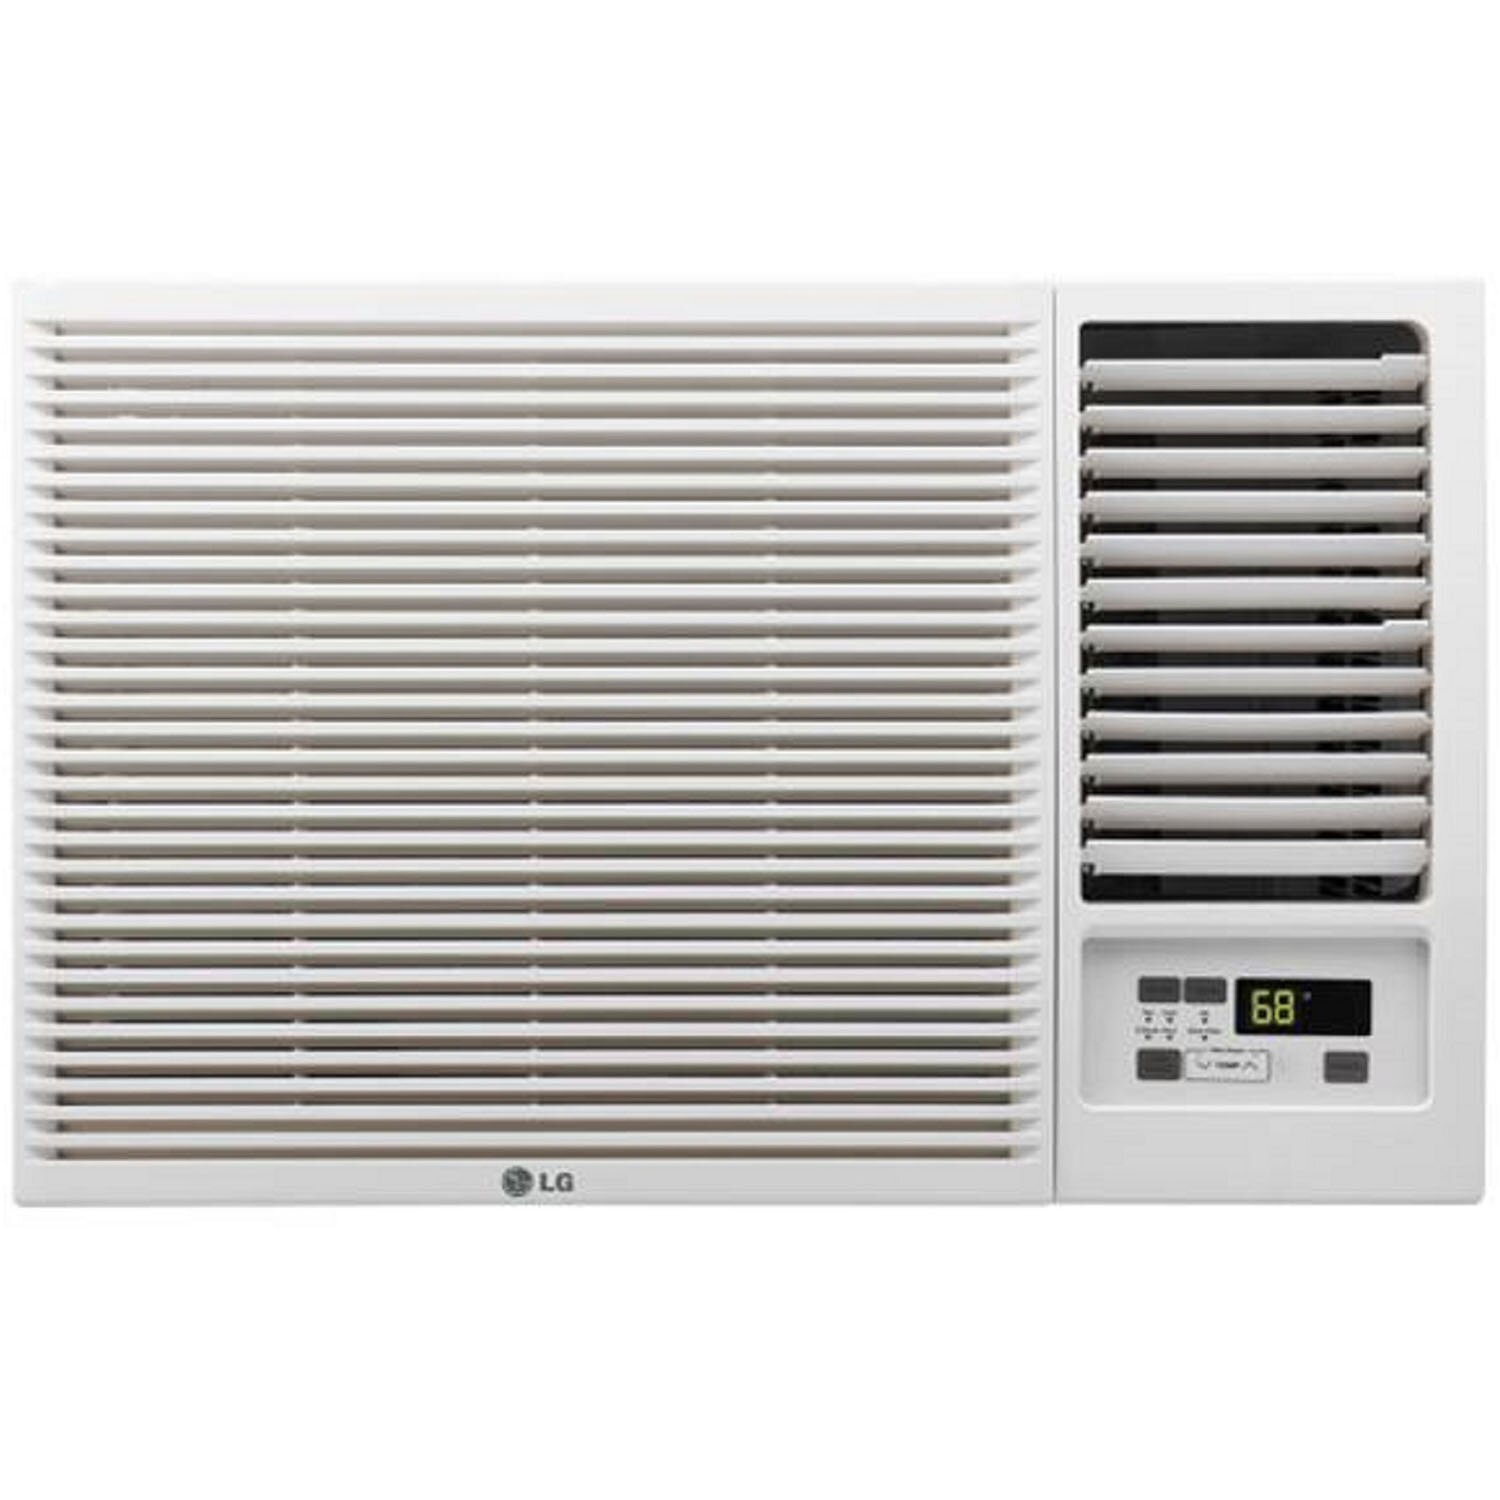 Lg 12000 btu window air conditioner wayfair for Aire acondicionado central